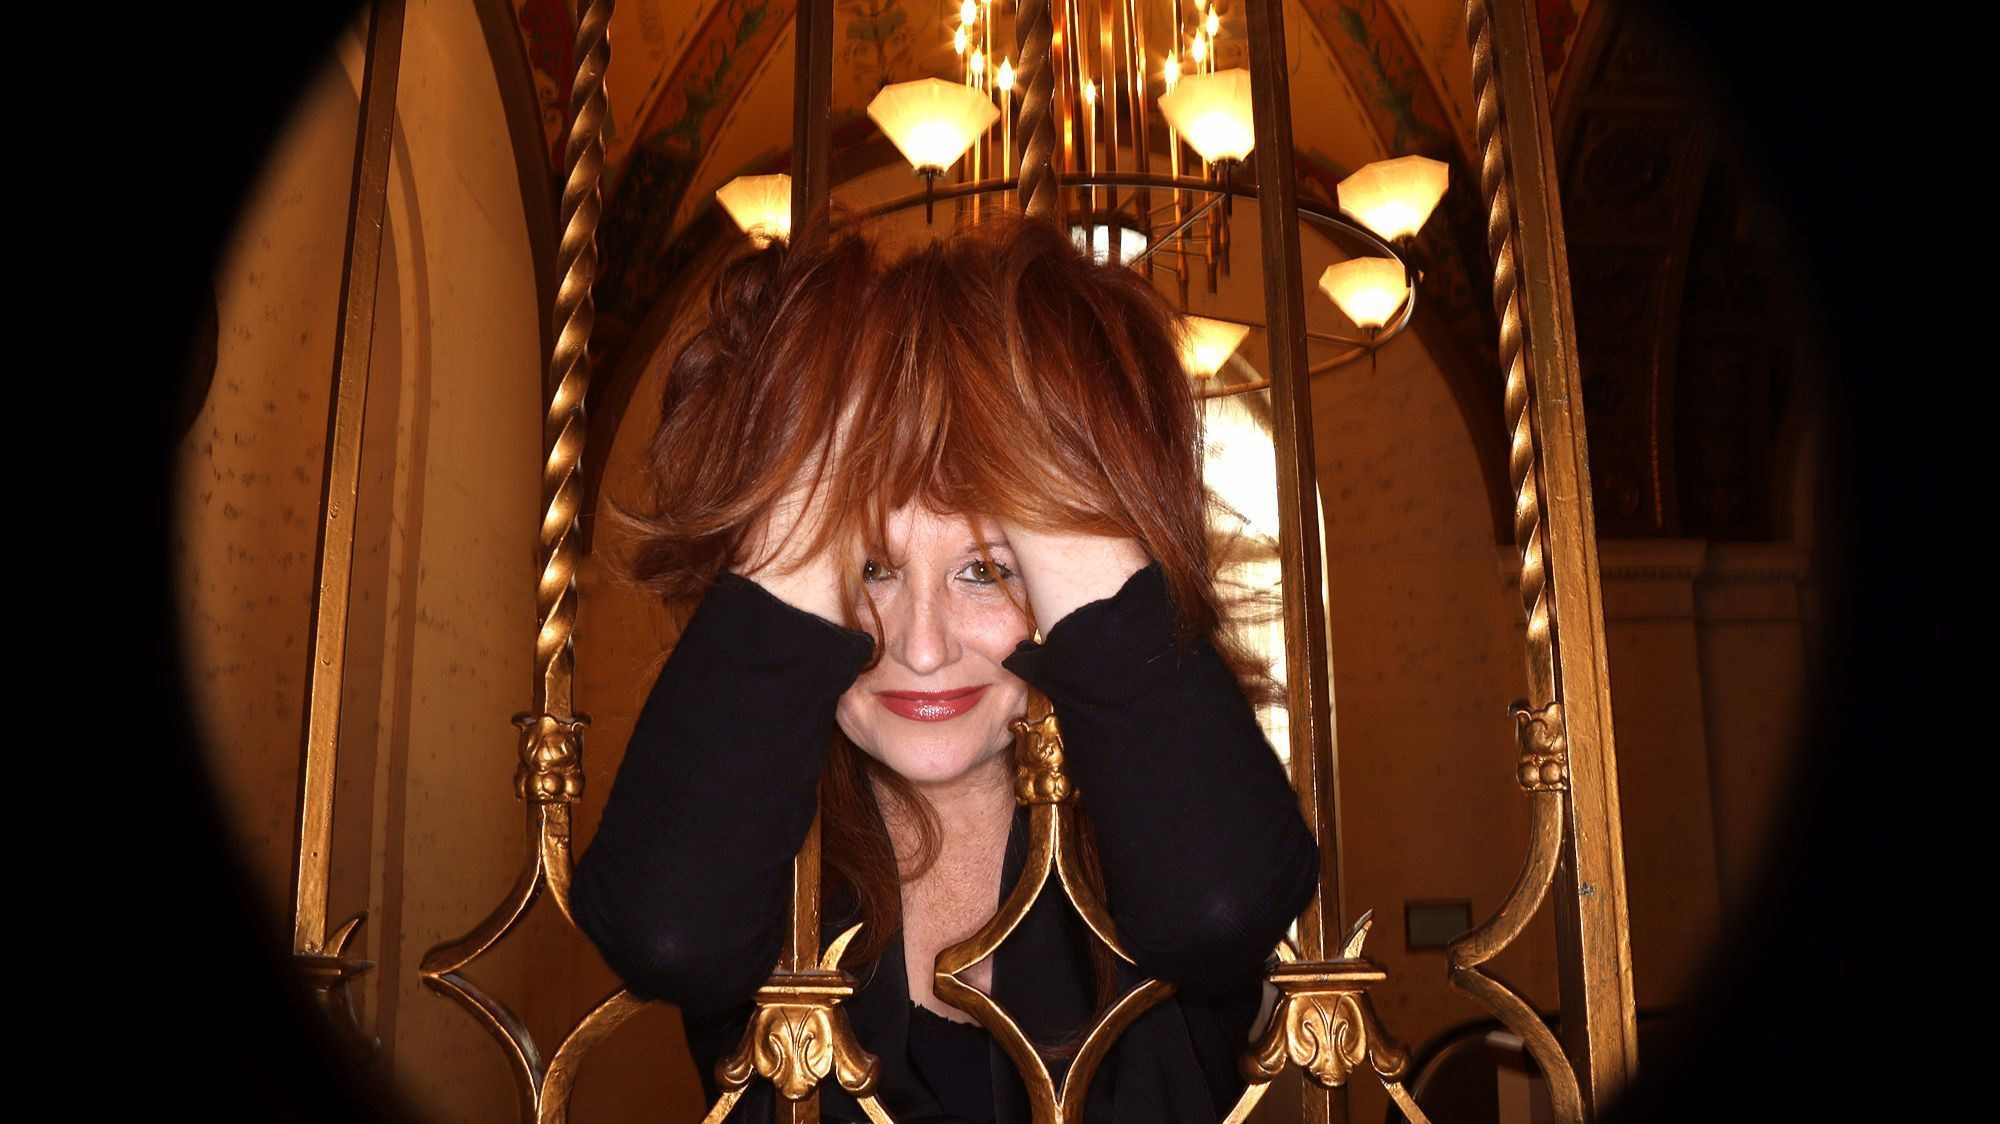 Karen Finley photographed at the Millennium Biltmore in Los Angeles in 2015.